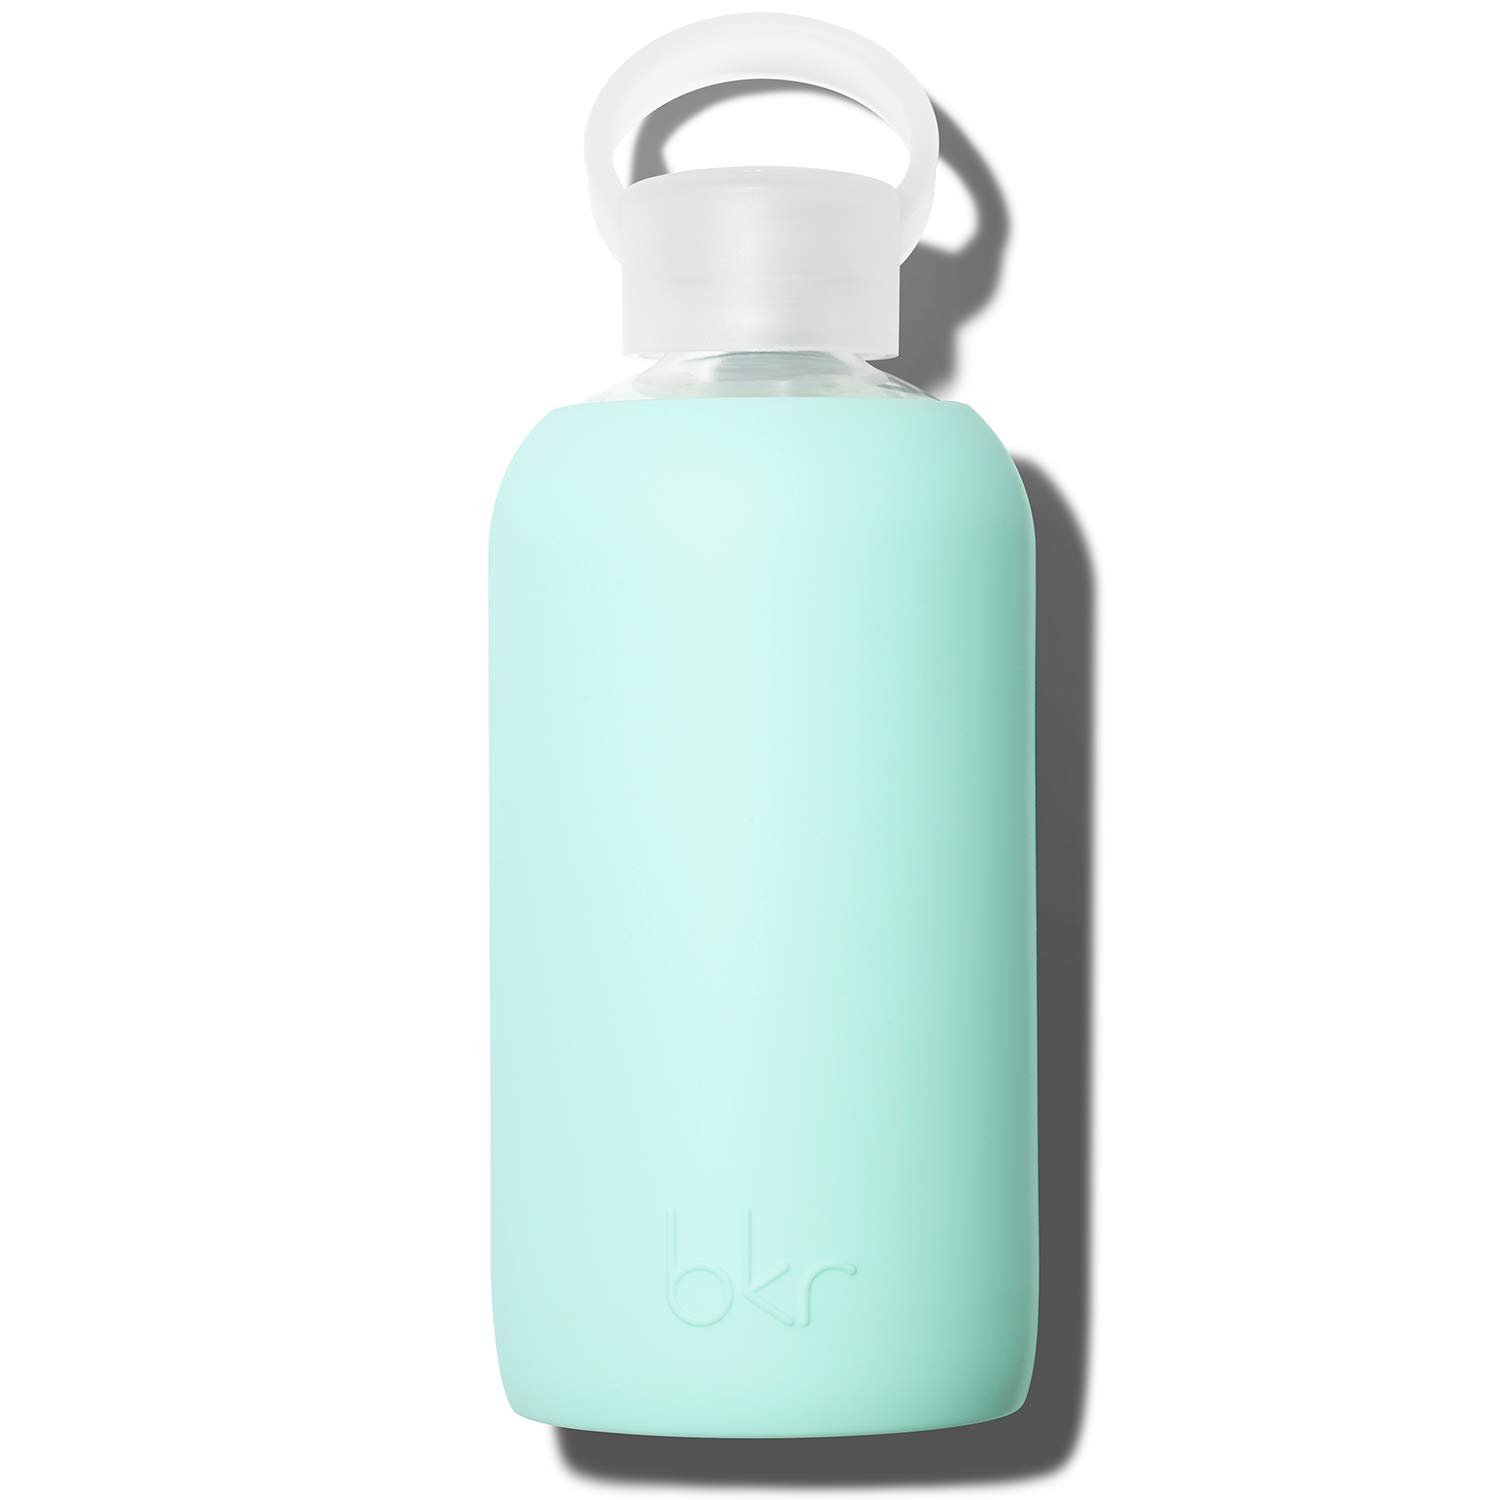 bkr Glass Water Bottle - Luxury BPA Free Water Bottle, Smooth Silicone Sleeve - Pepper - Opaque Sweet Peppermint Green - Leak Proof, Narrow Neck, Dishwasher Safe - 16 Ounces